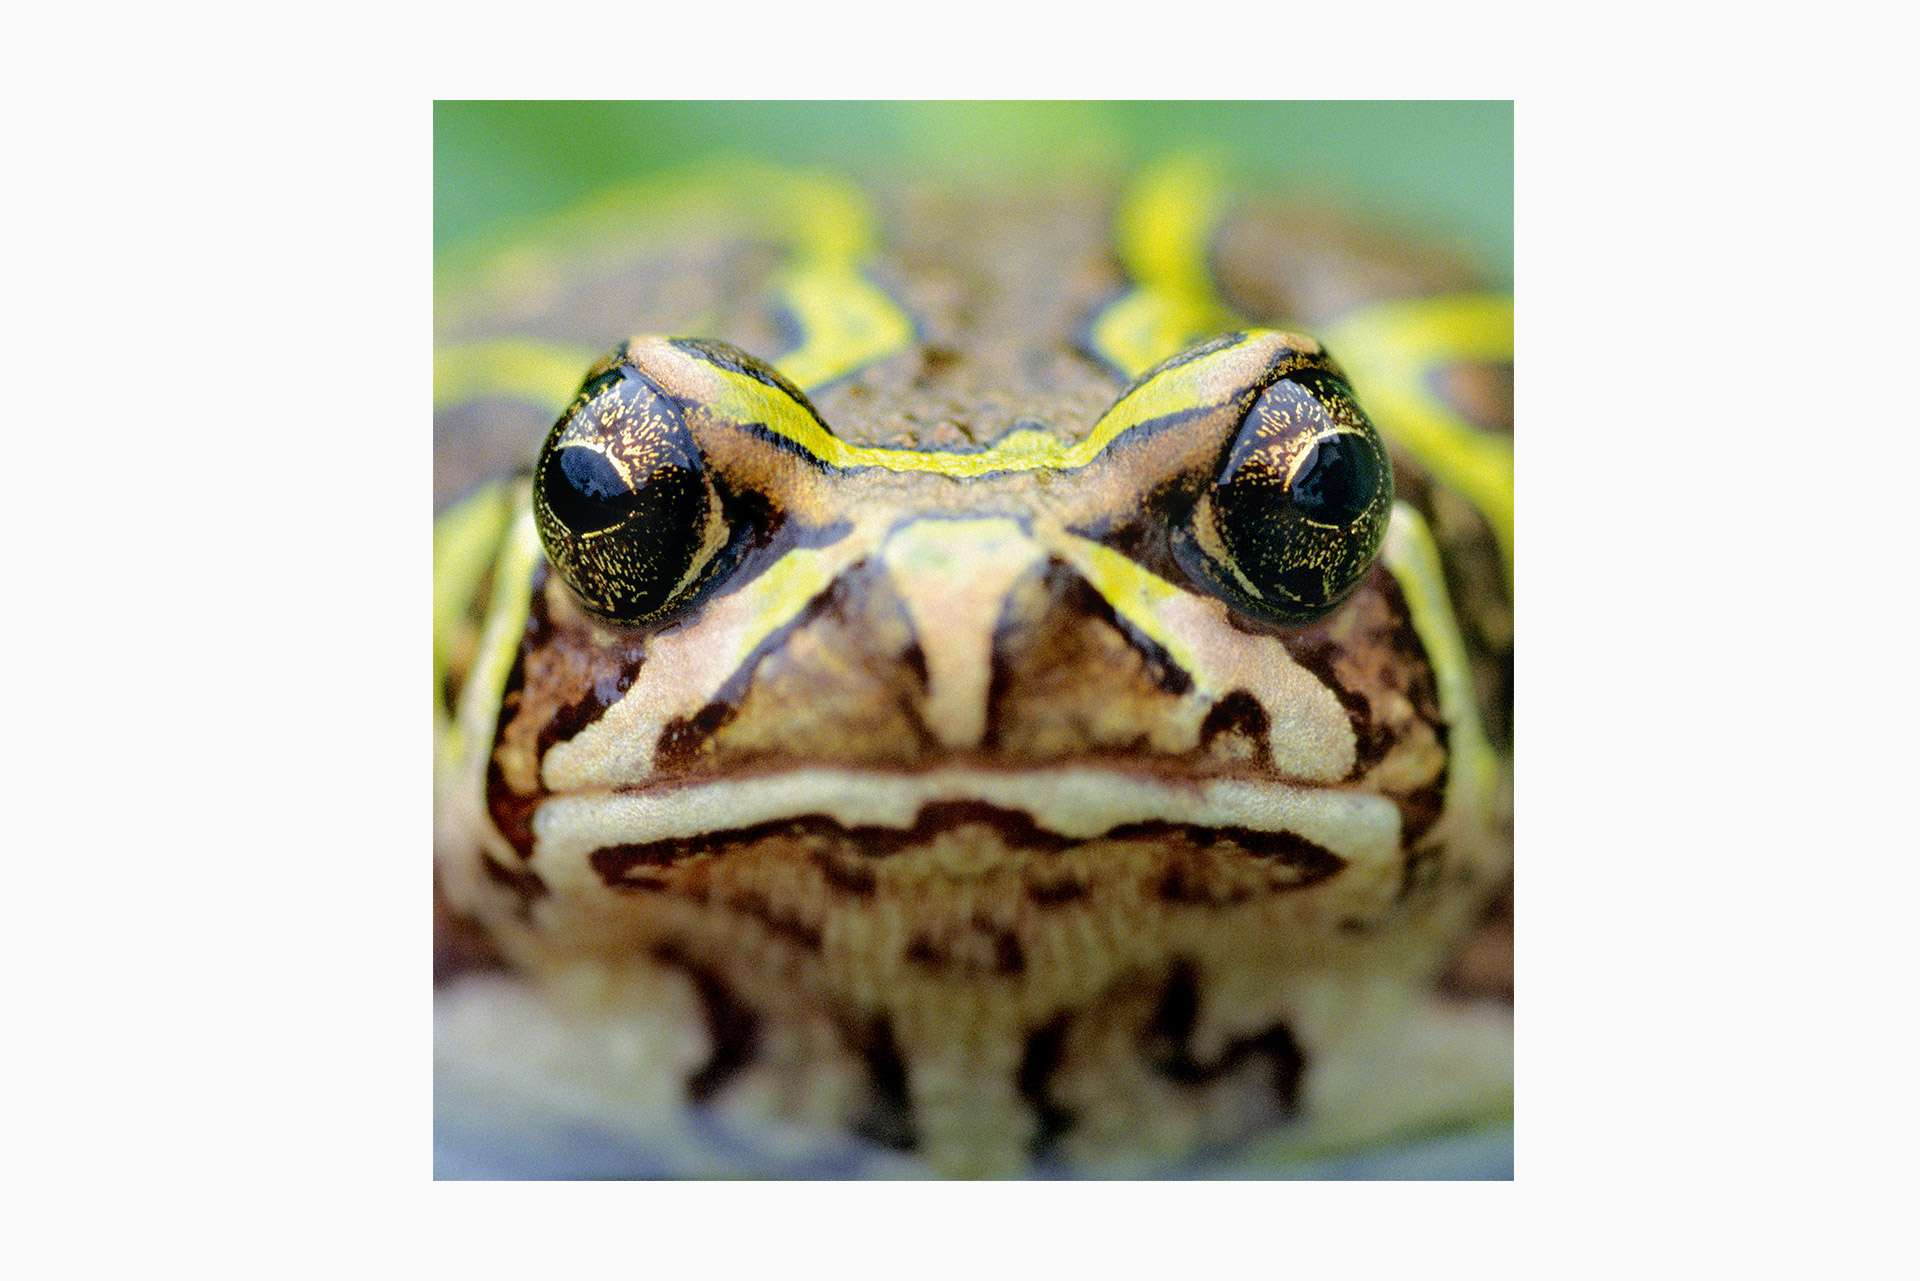 Gilles Martin's photograph of a toad from Madagascar